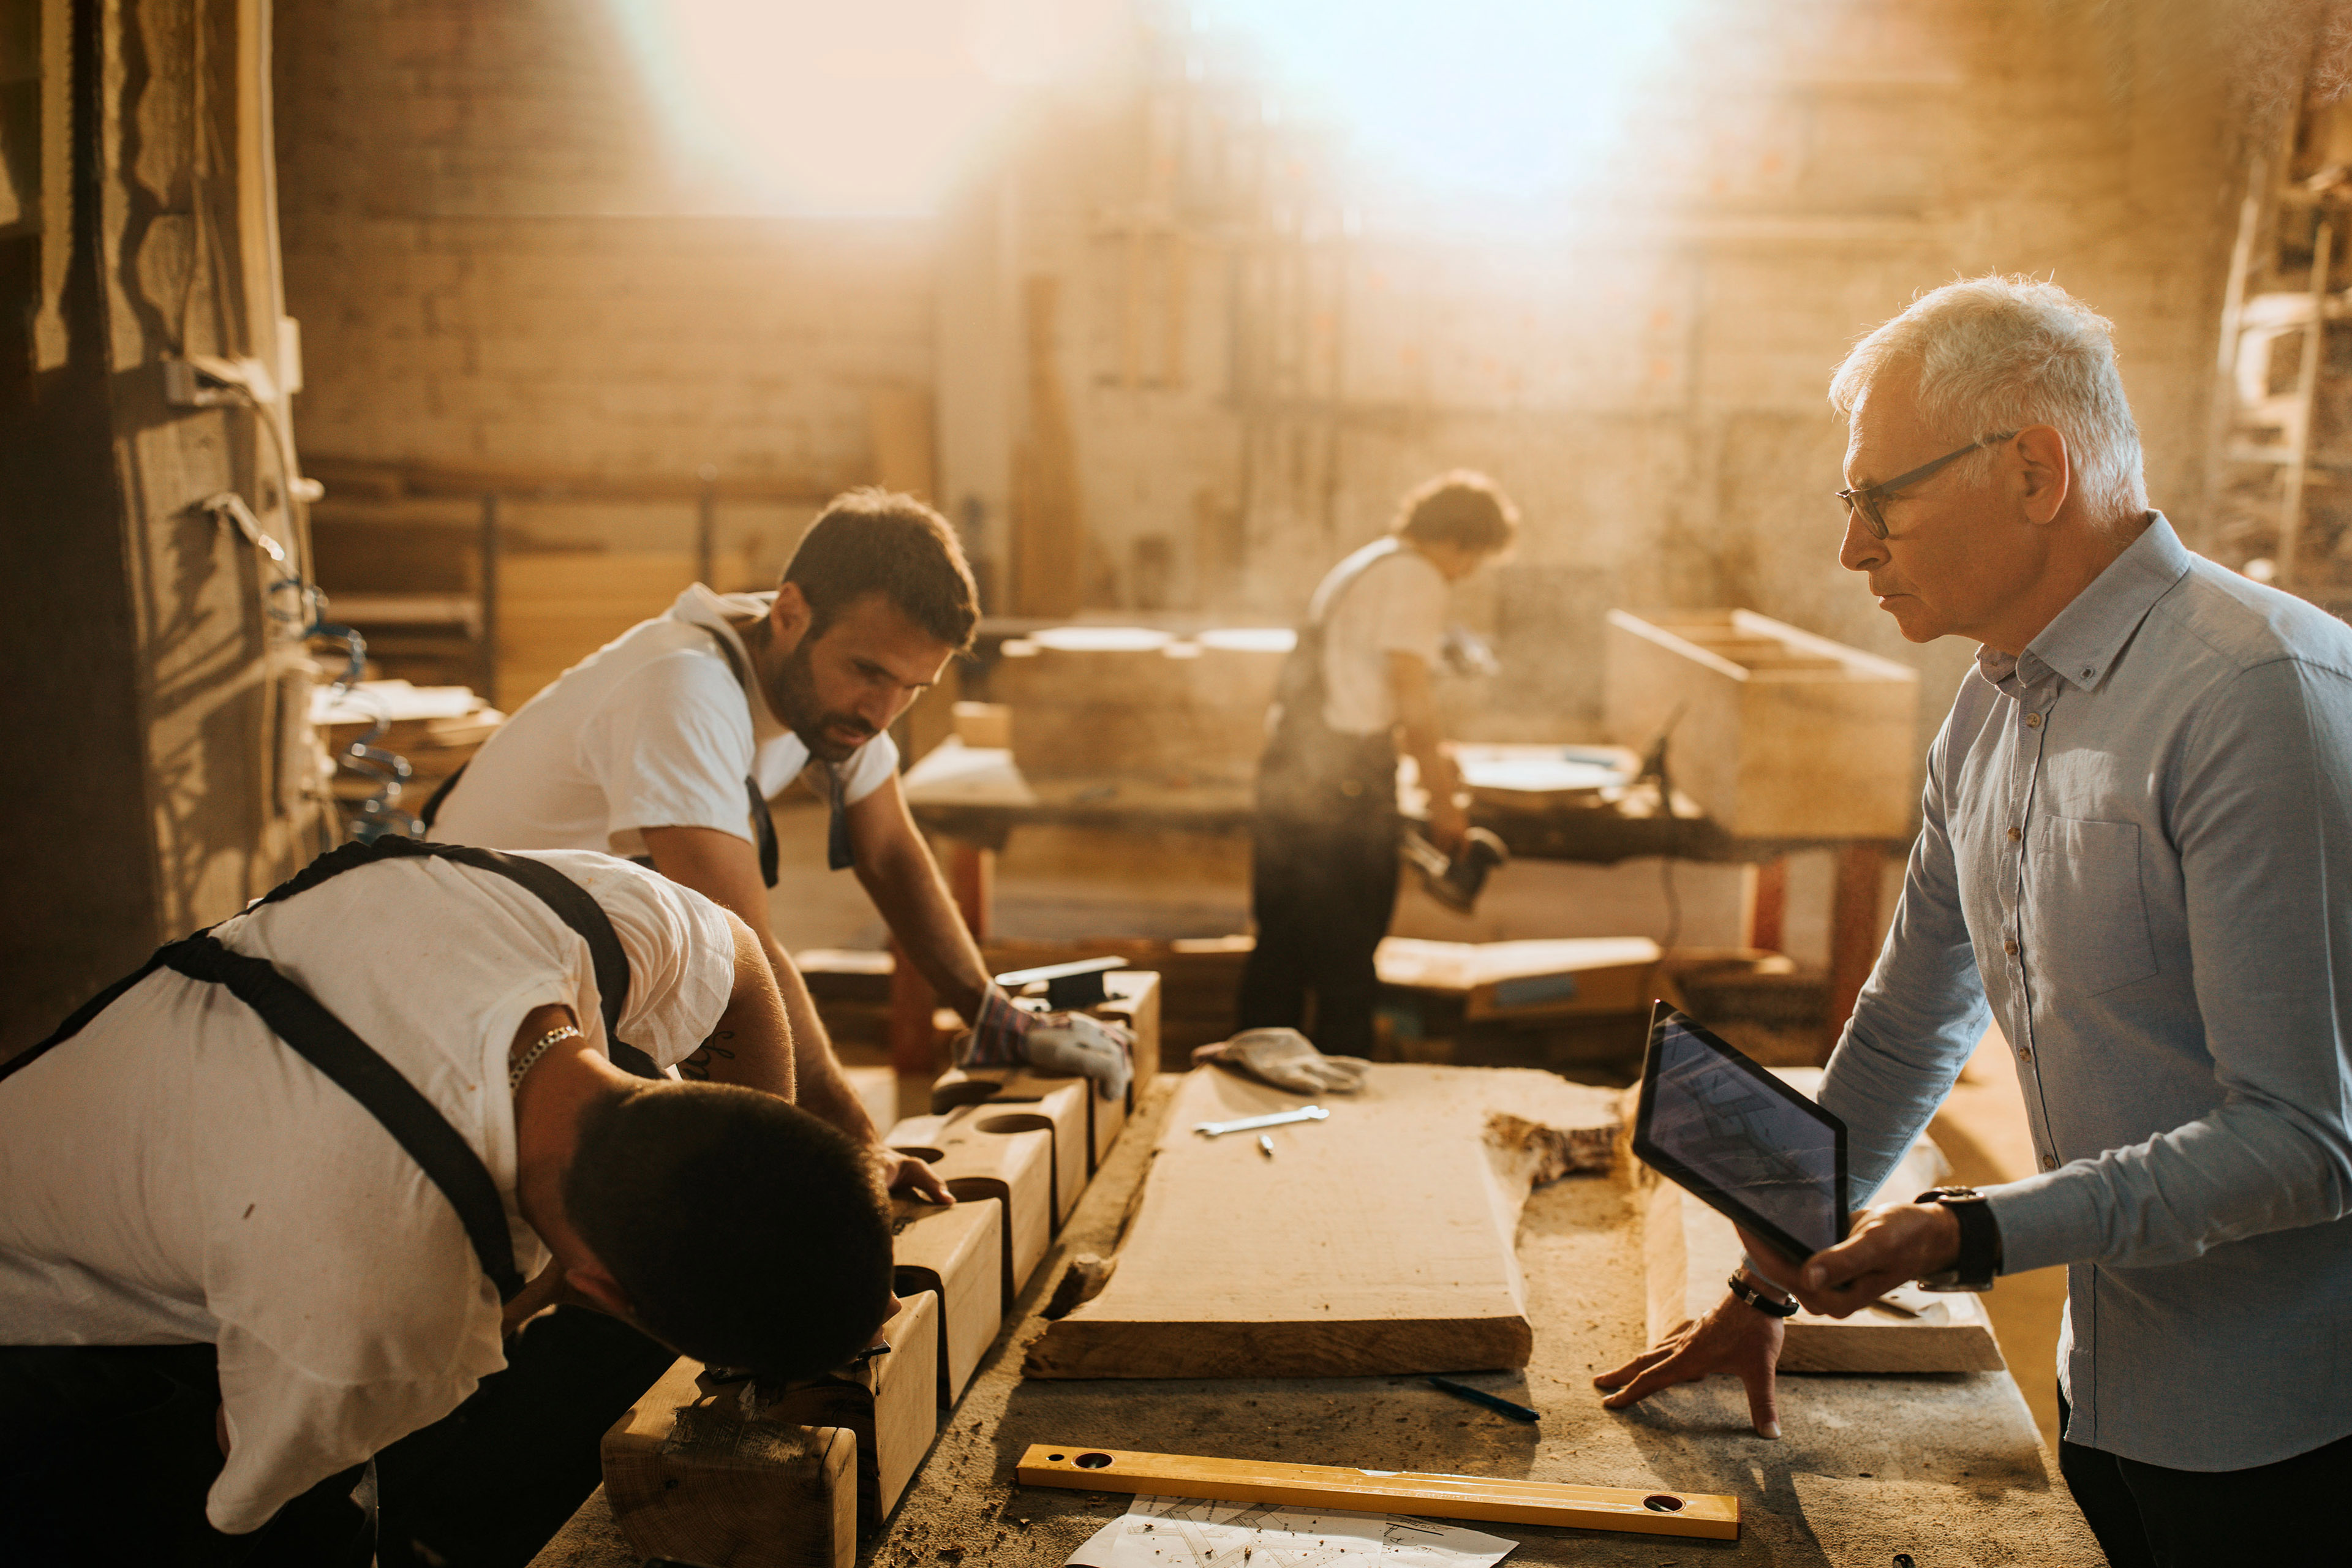 Carpenters working in the workshop.